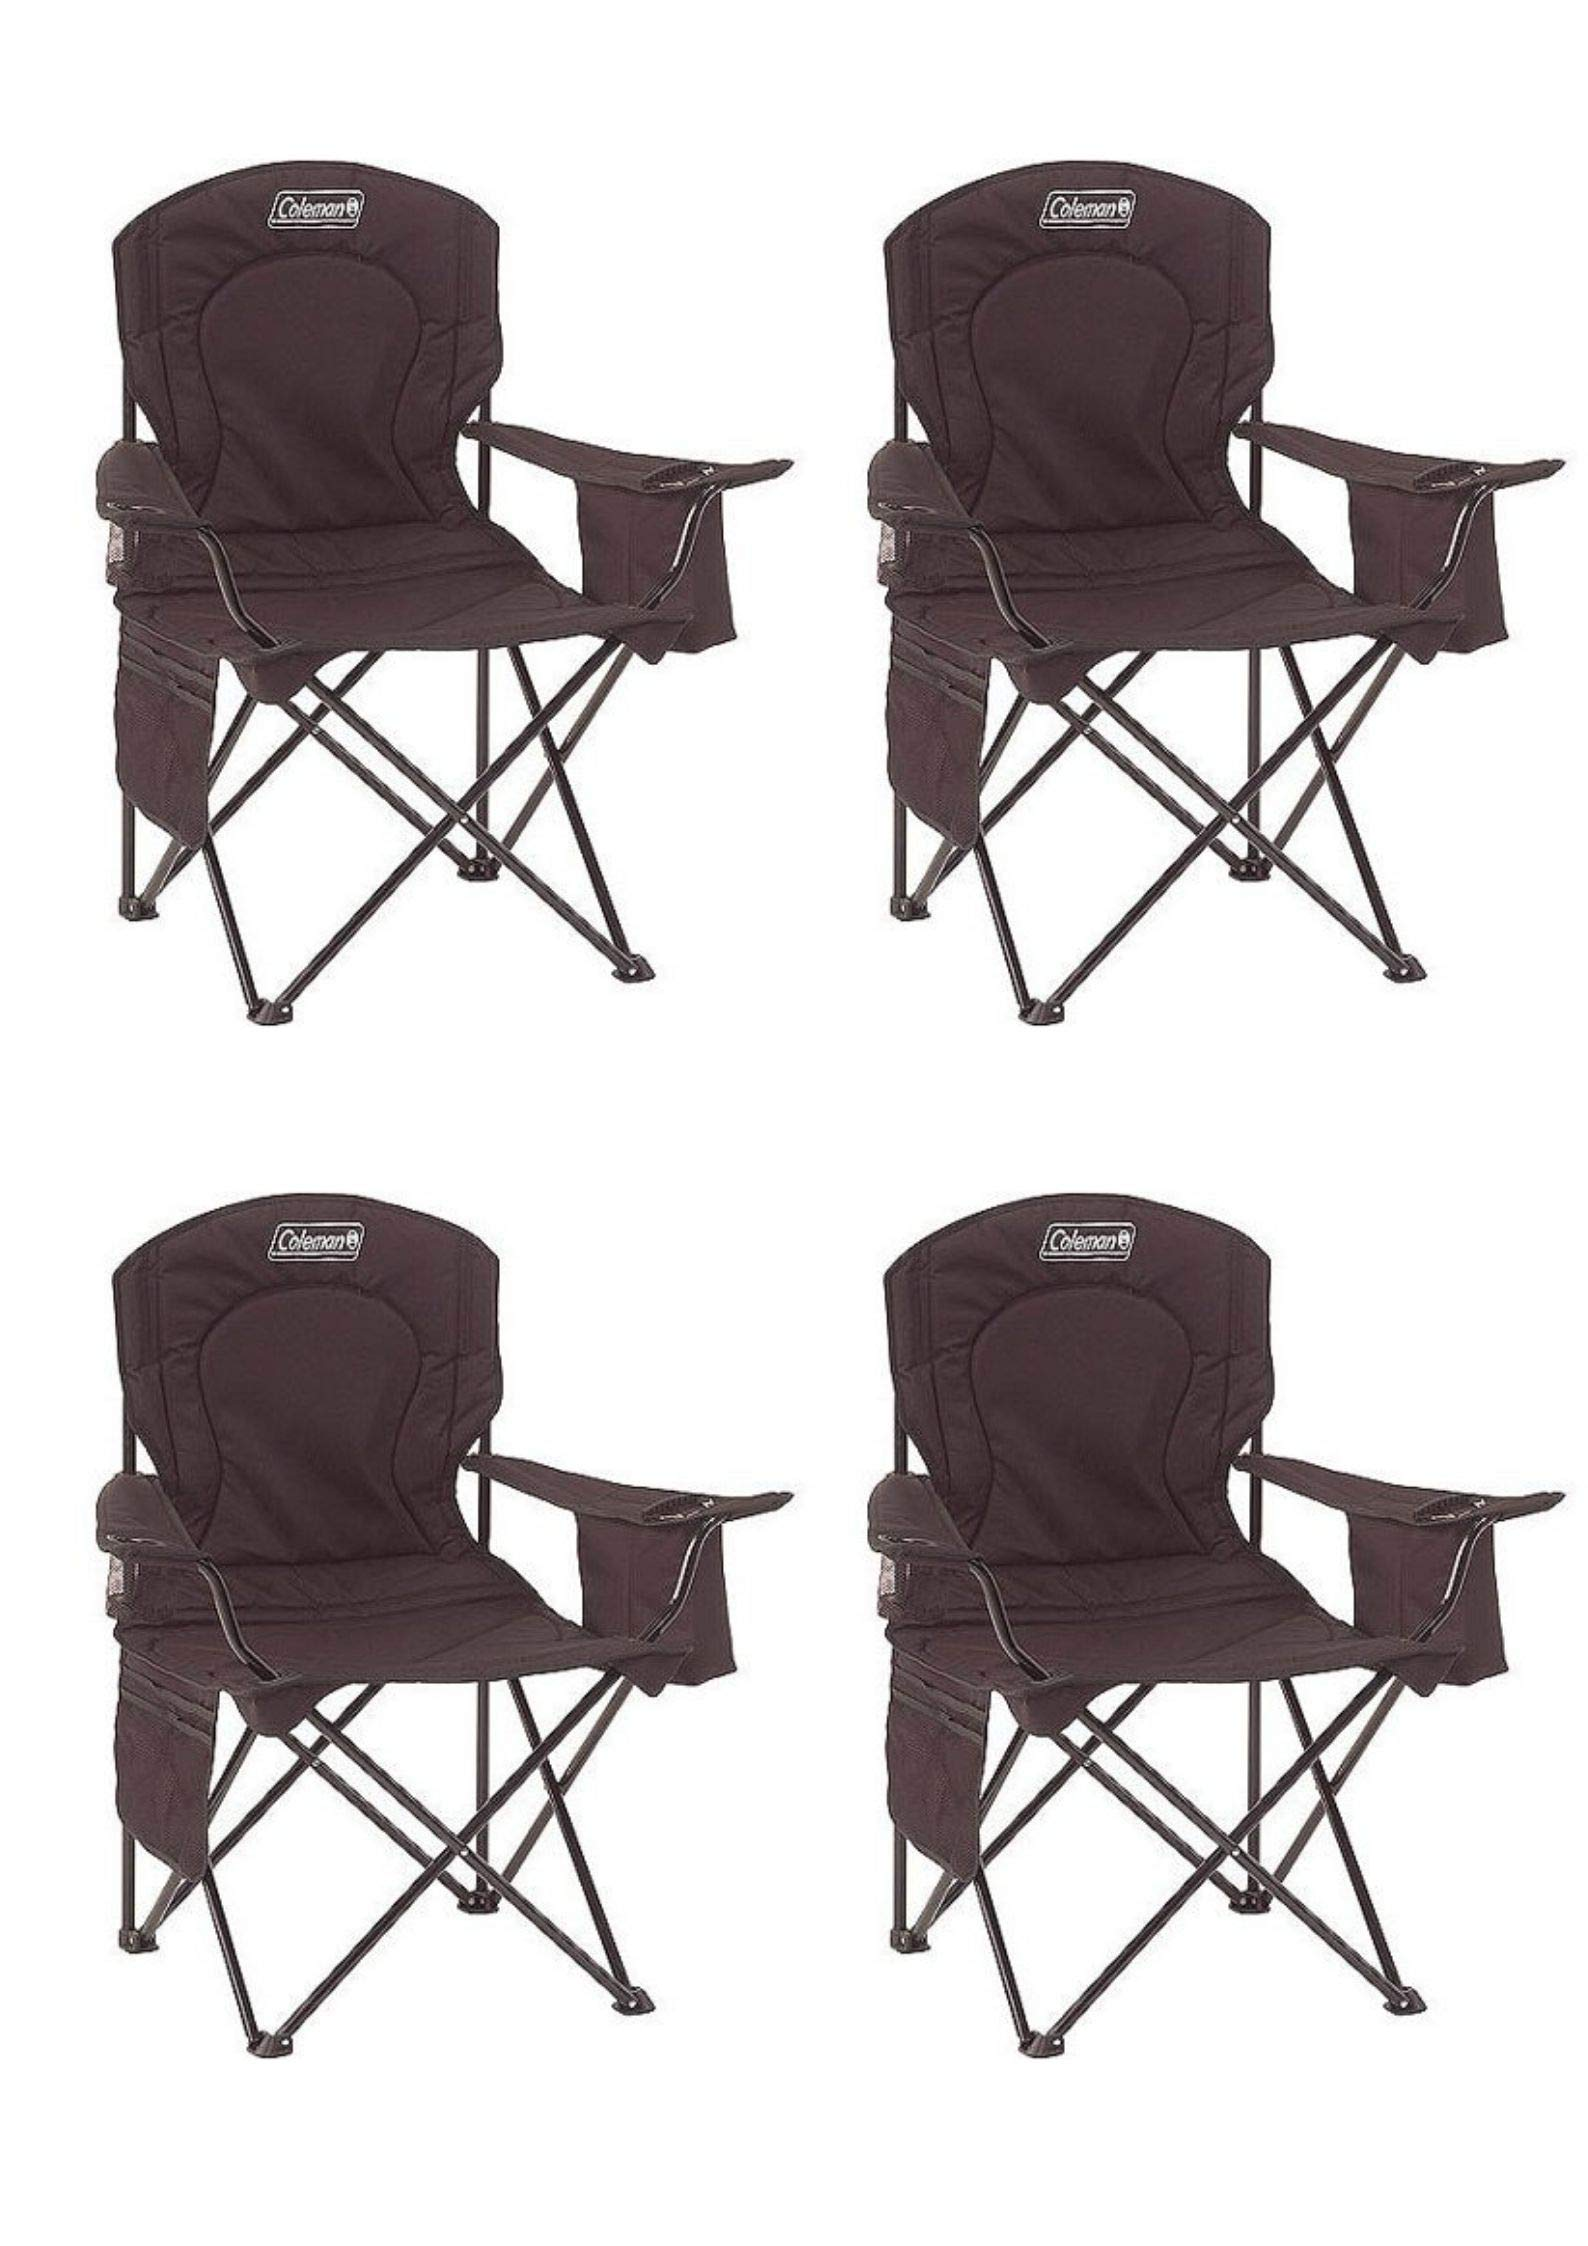 Coleman Portable Camping Quad Chair with 4-Can Cooler (Black/Pack of 4)